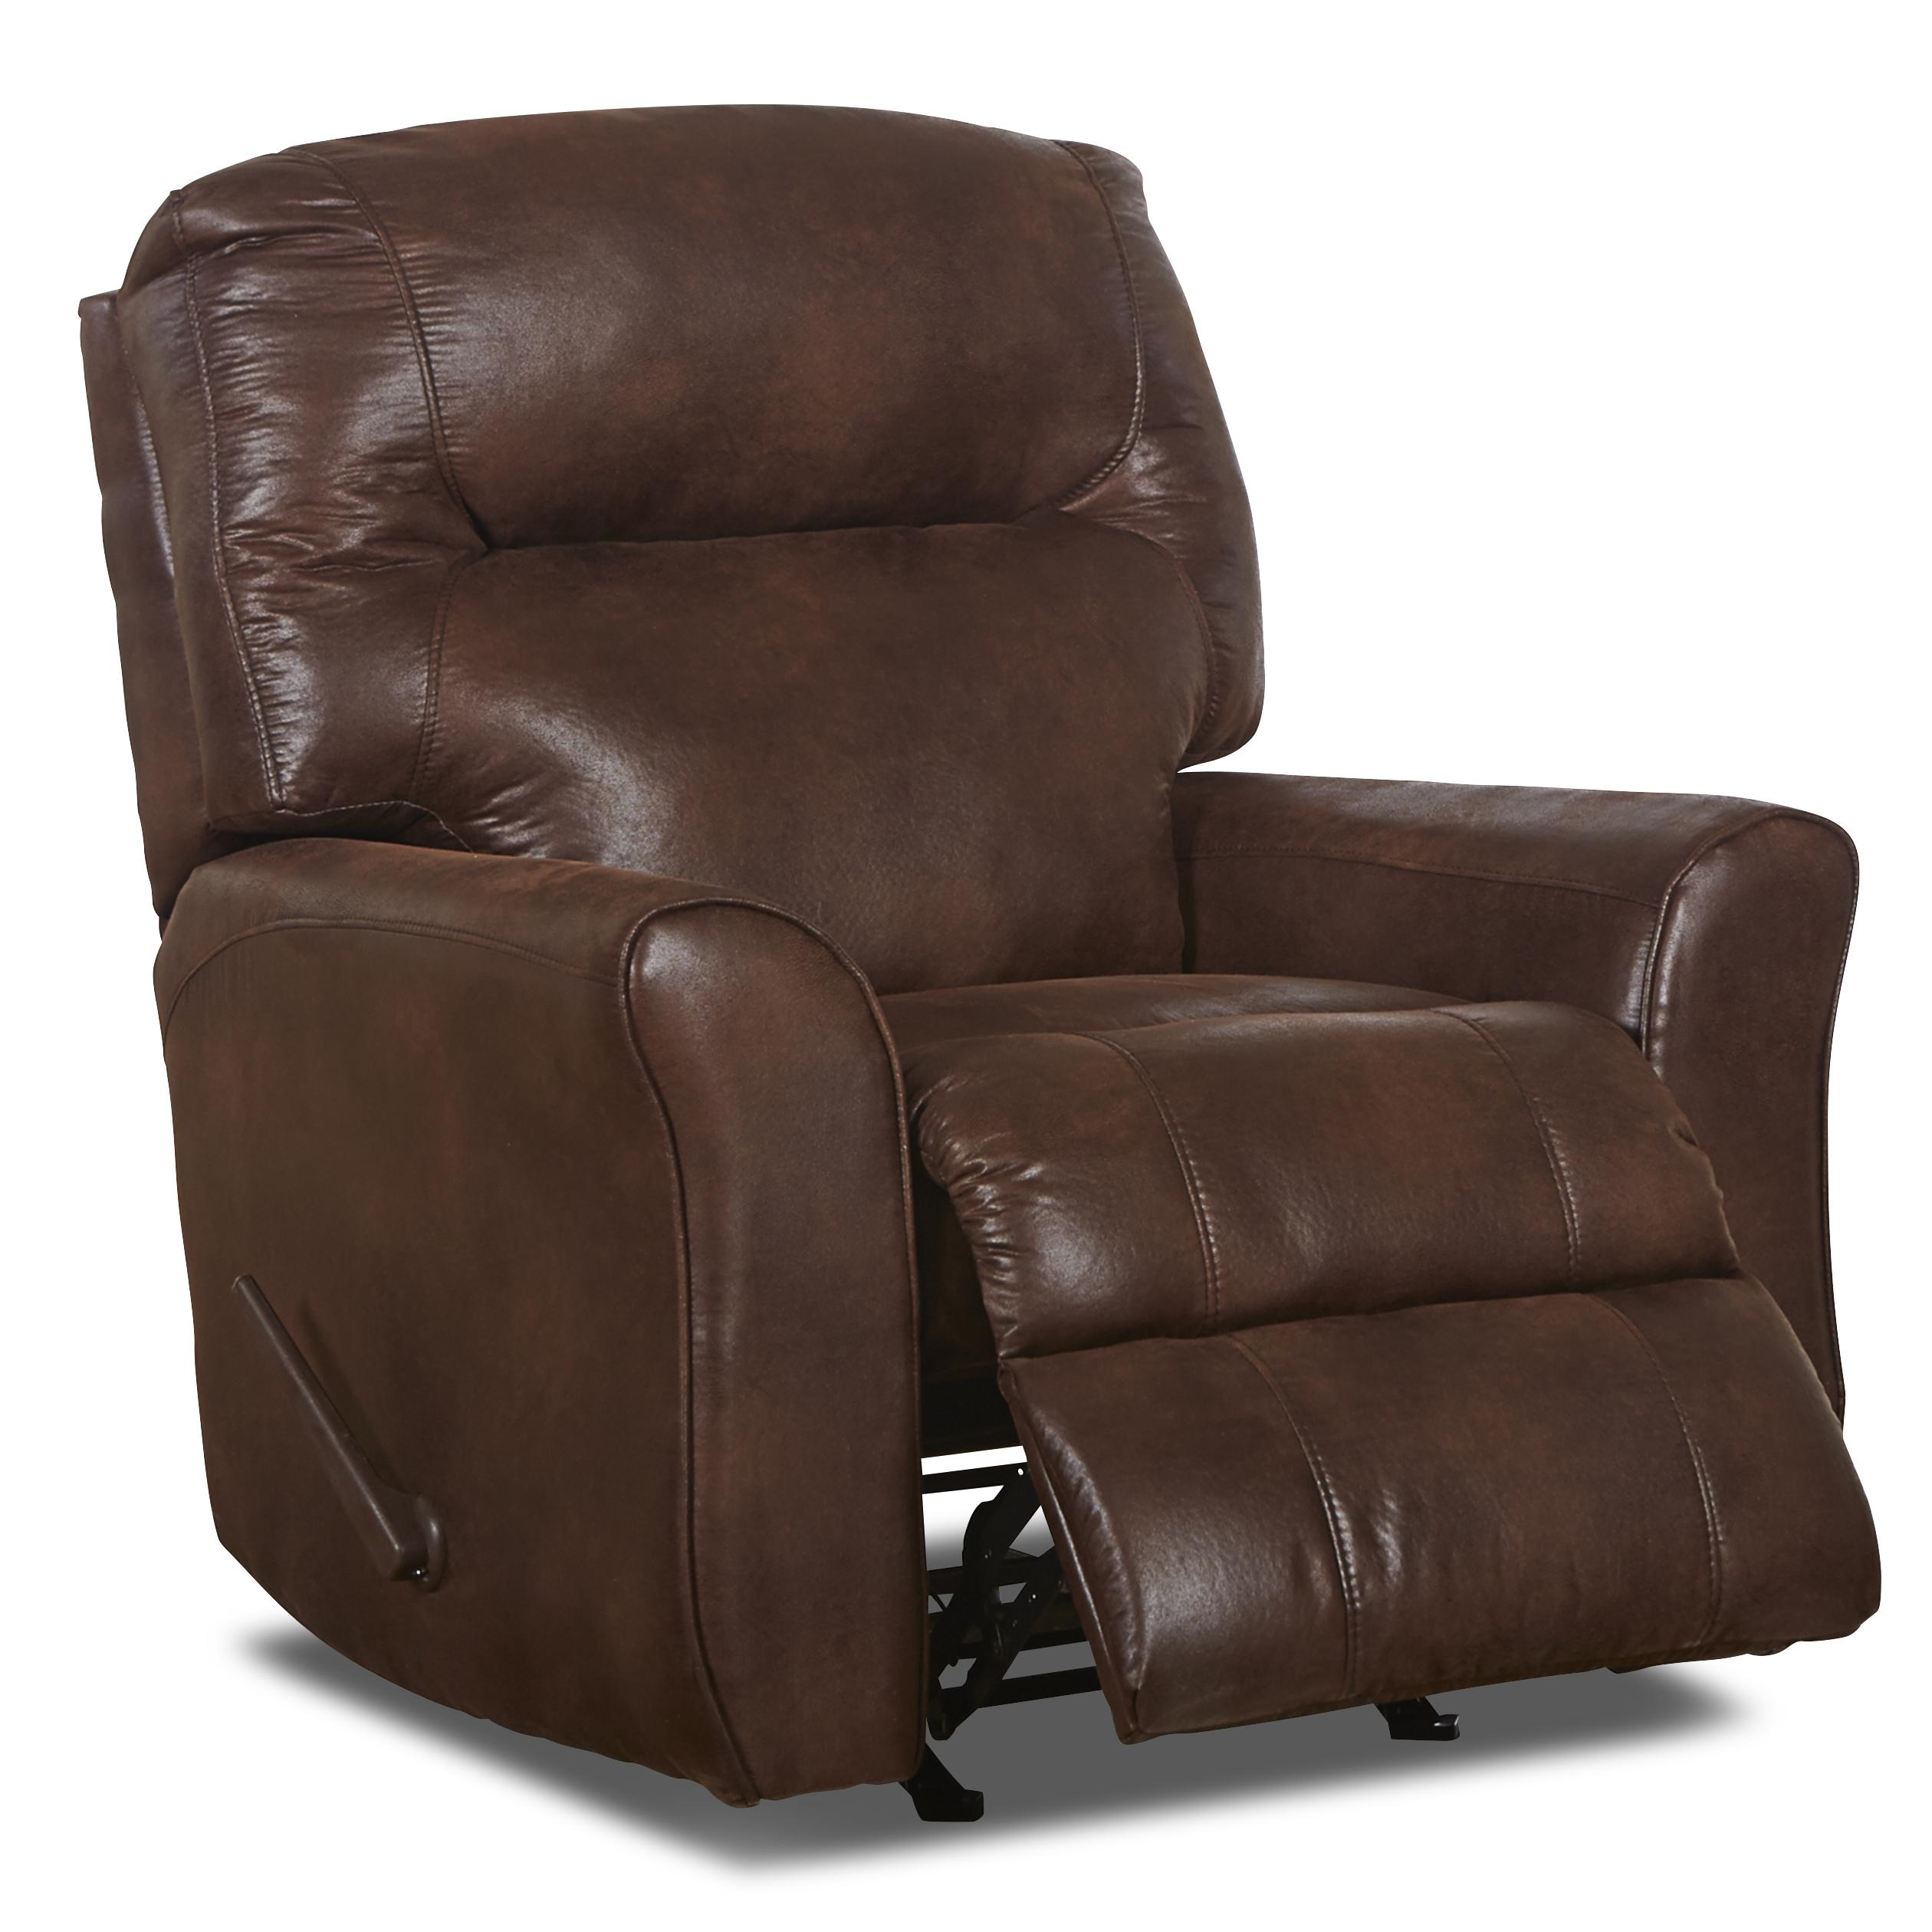 Recliner Rocking Chair Casual Leather Reclining Rocking Chair With Attached Back